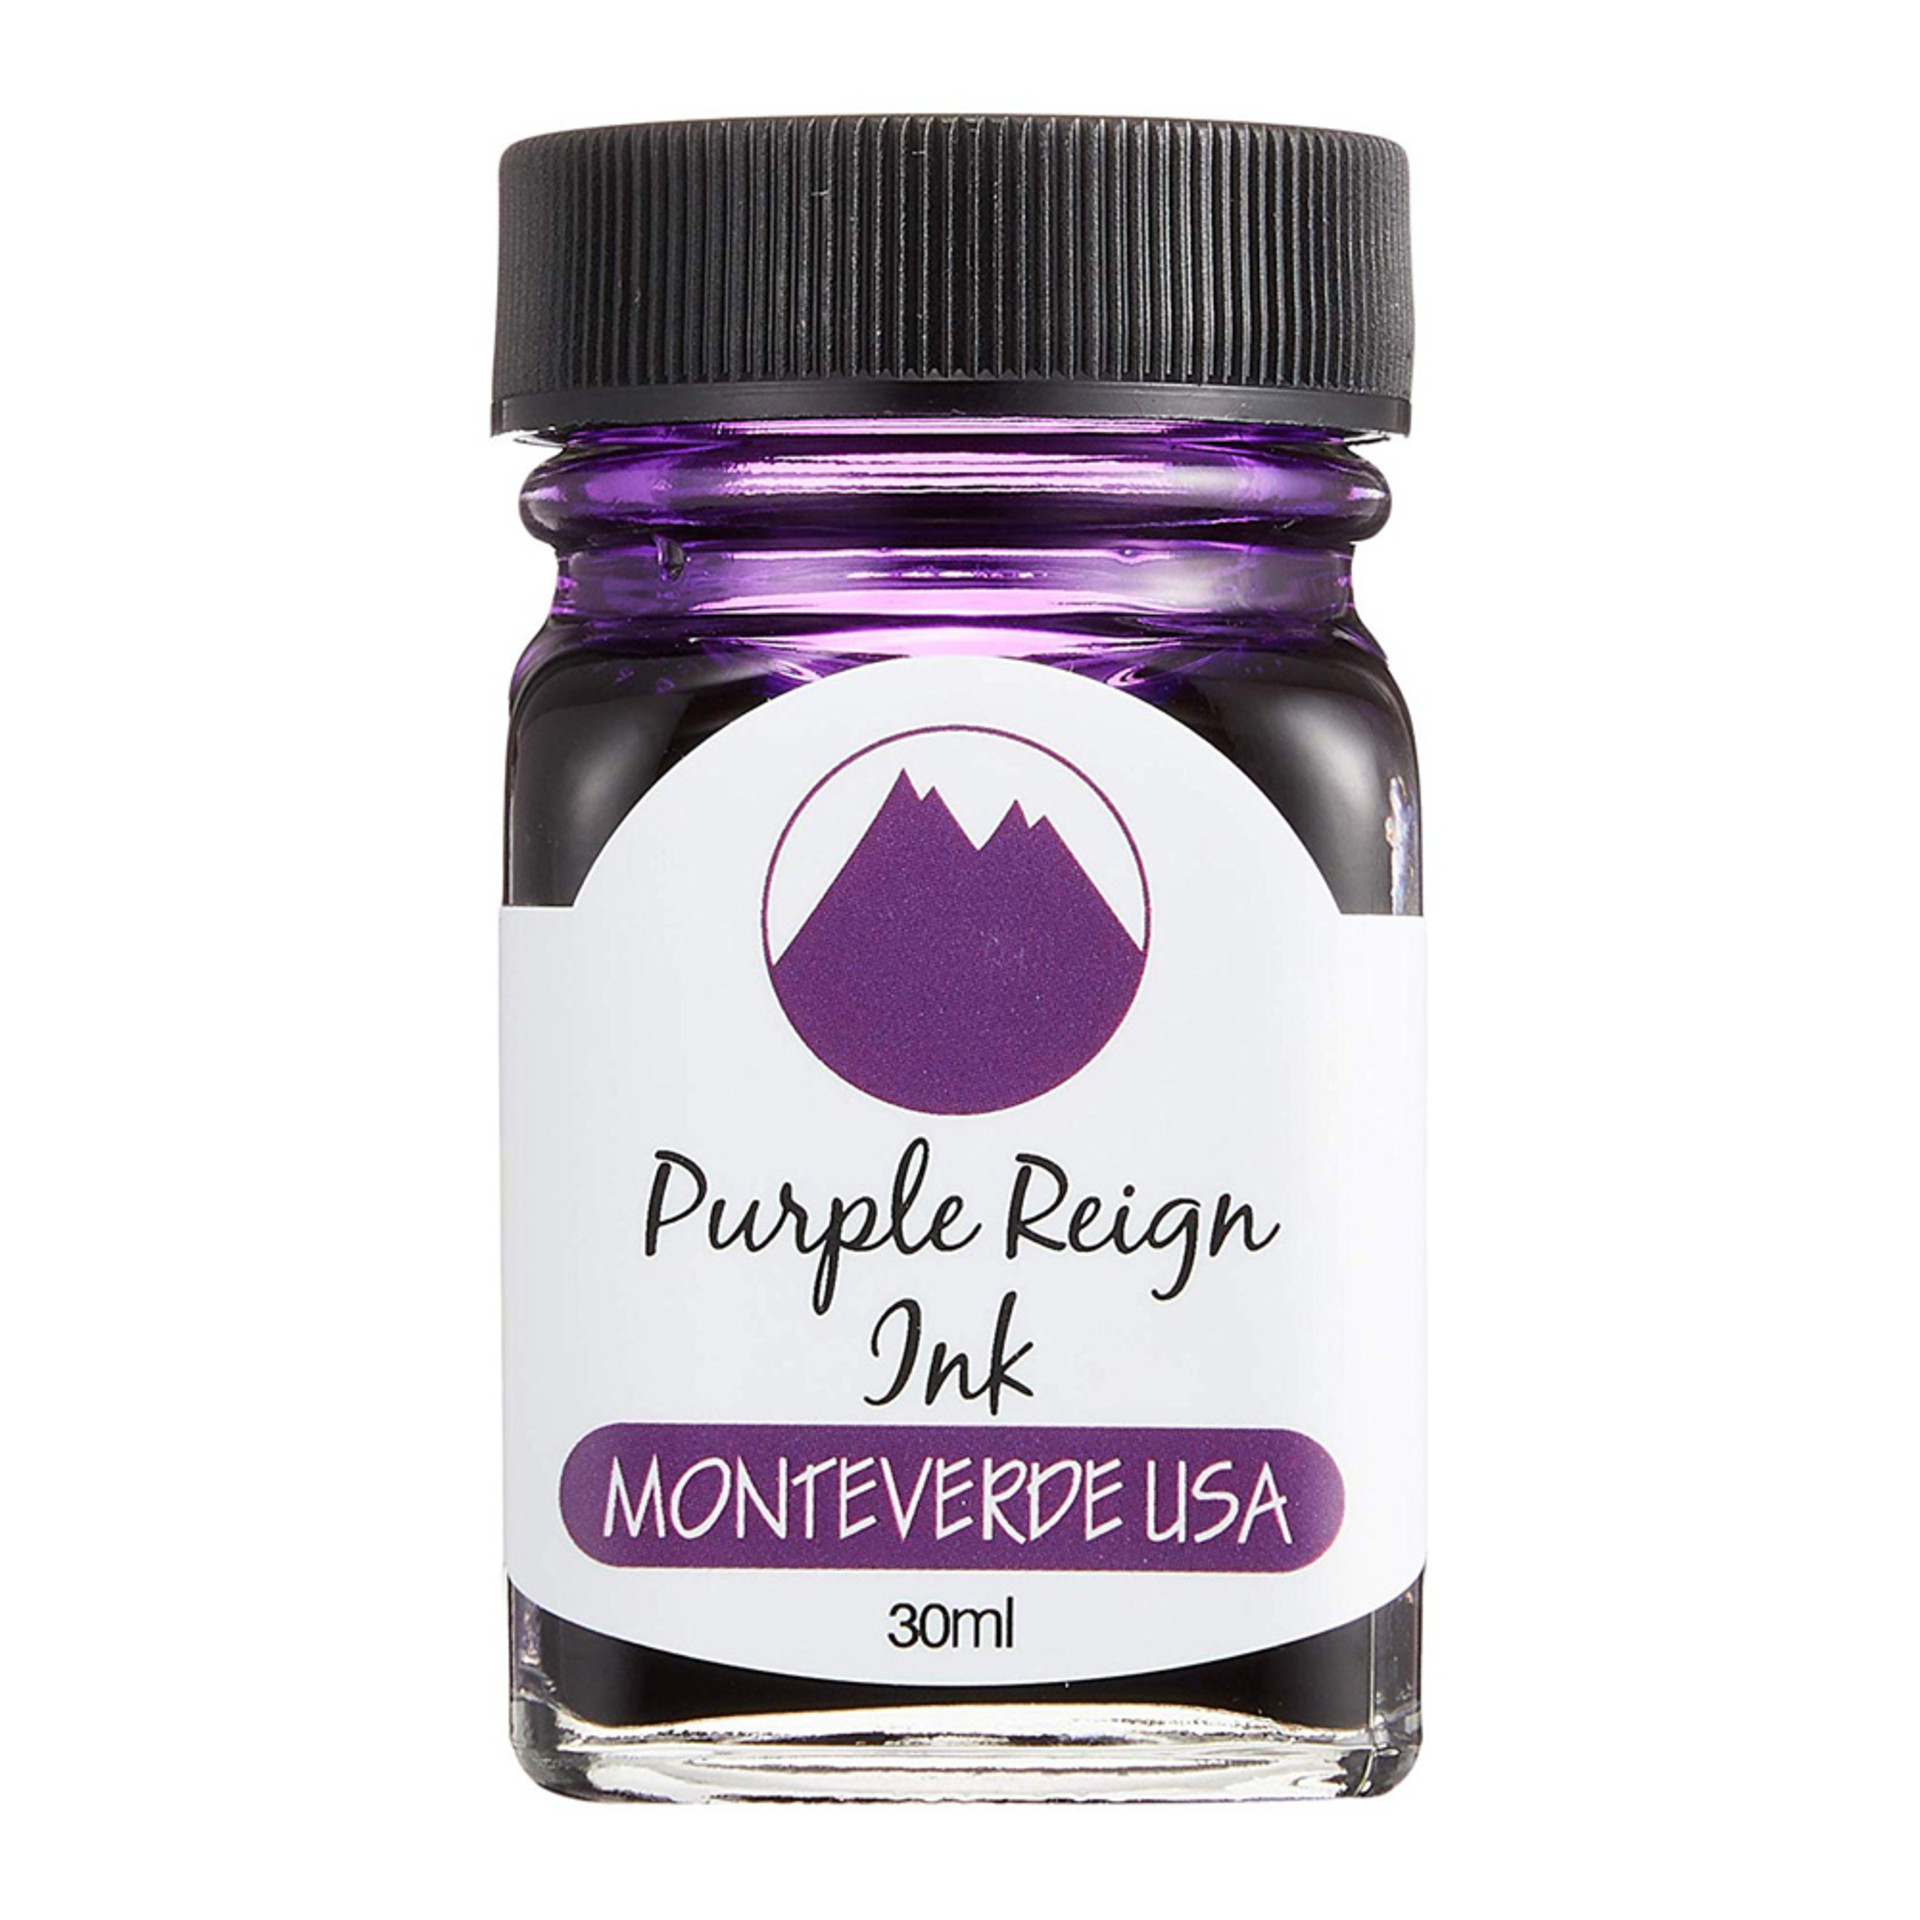 Monteverde 30ml Fountain Pen Ink Purple